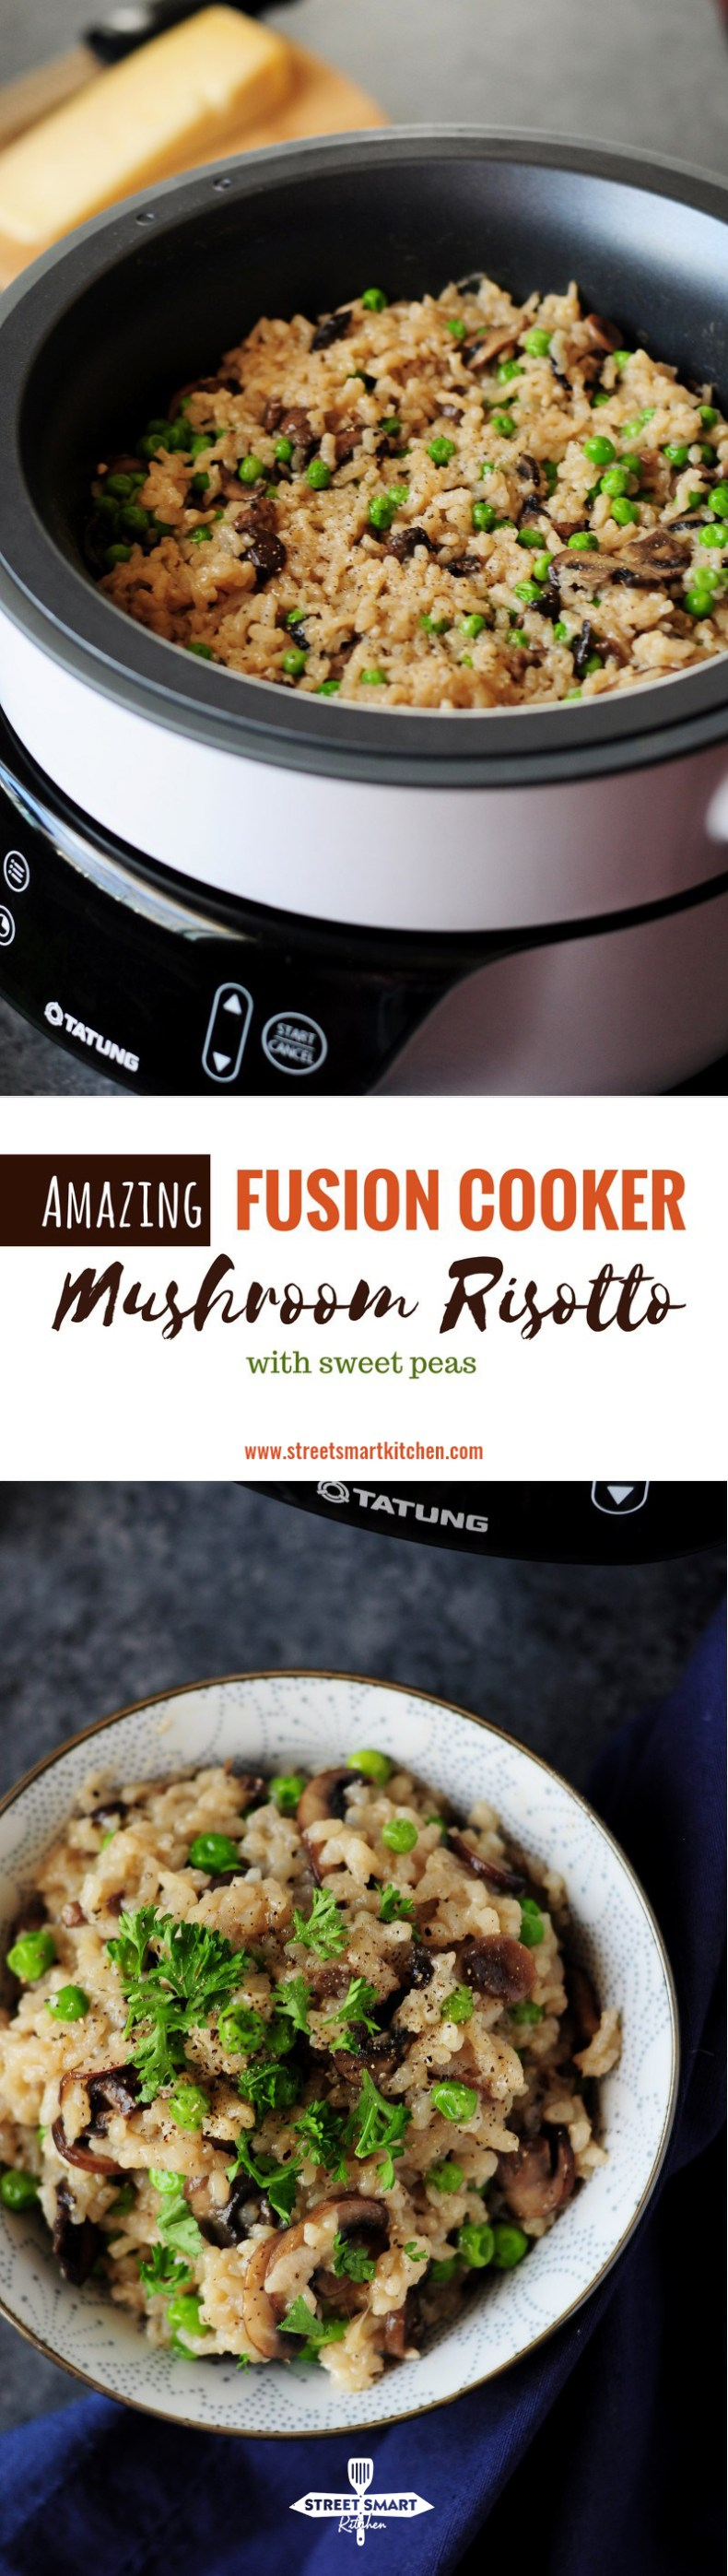 Fusion Cooker Mushroom Risotto with Sweet Peas (Stovetop & Slow Cooker Methods Included)